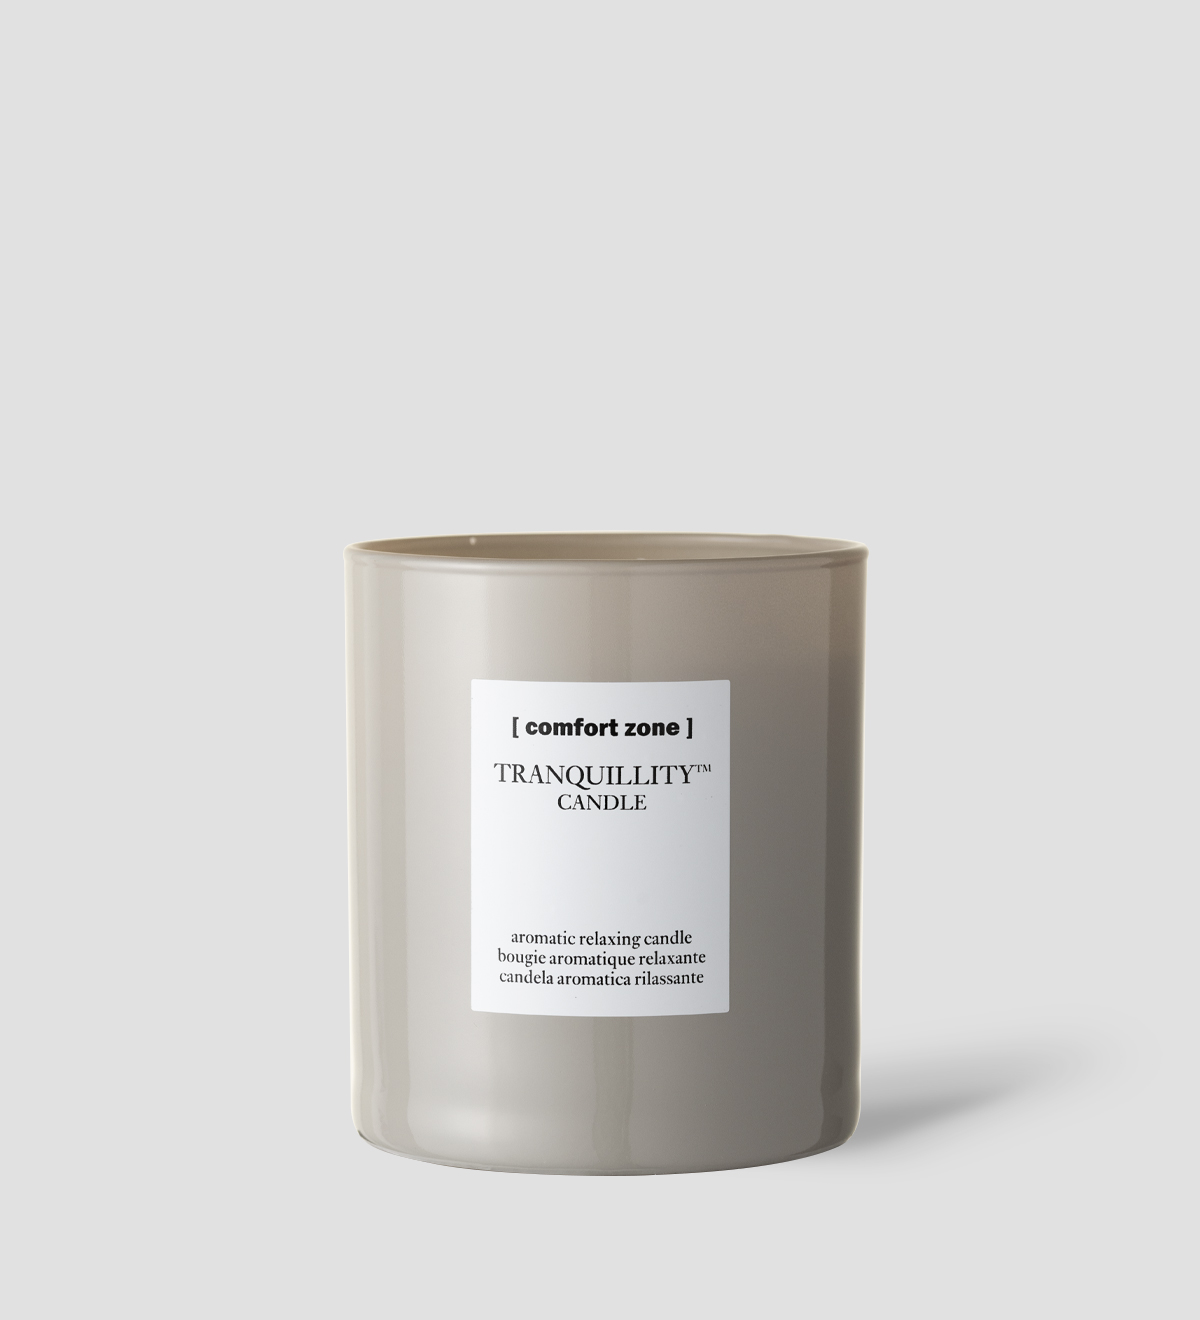 Comfort zone tranquility candle